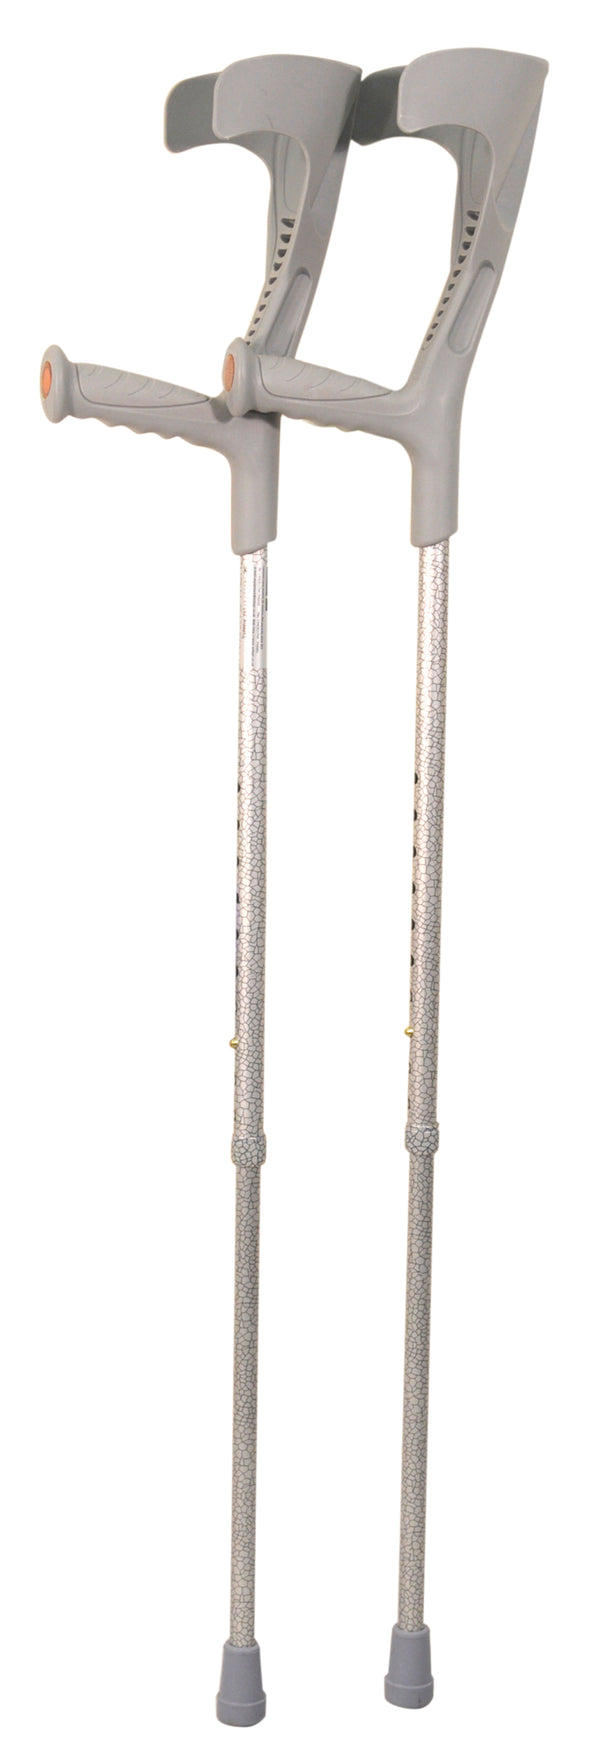 Pair of silver crackle finish crutches with silver-grey elbow rests, handles and ferrules